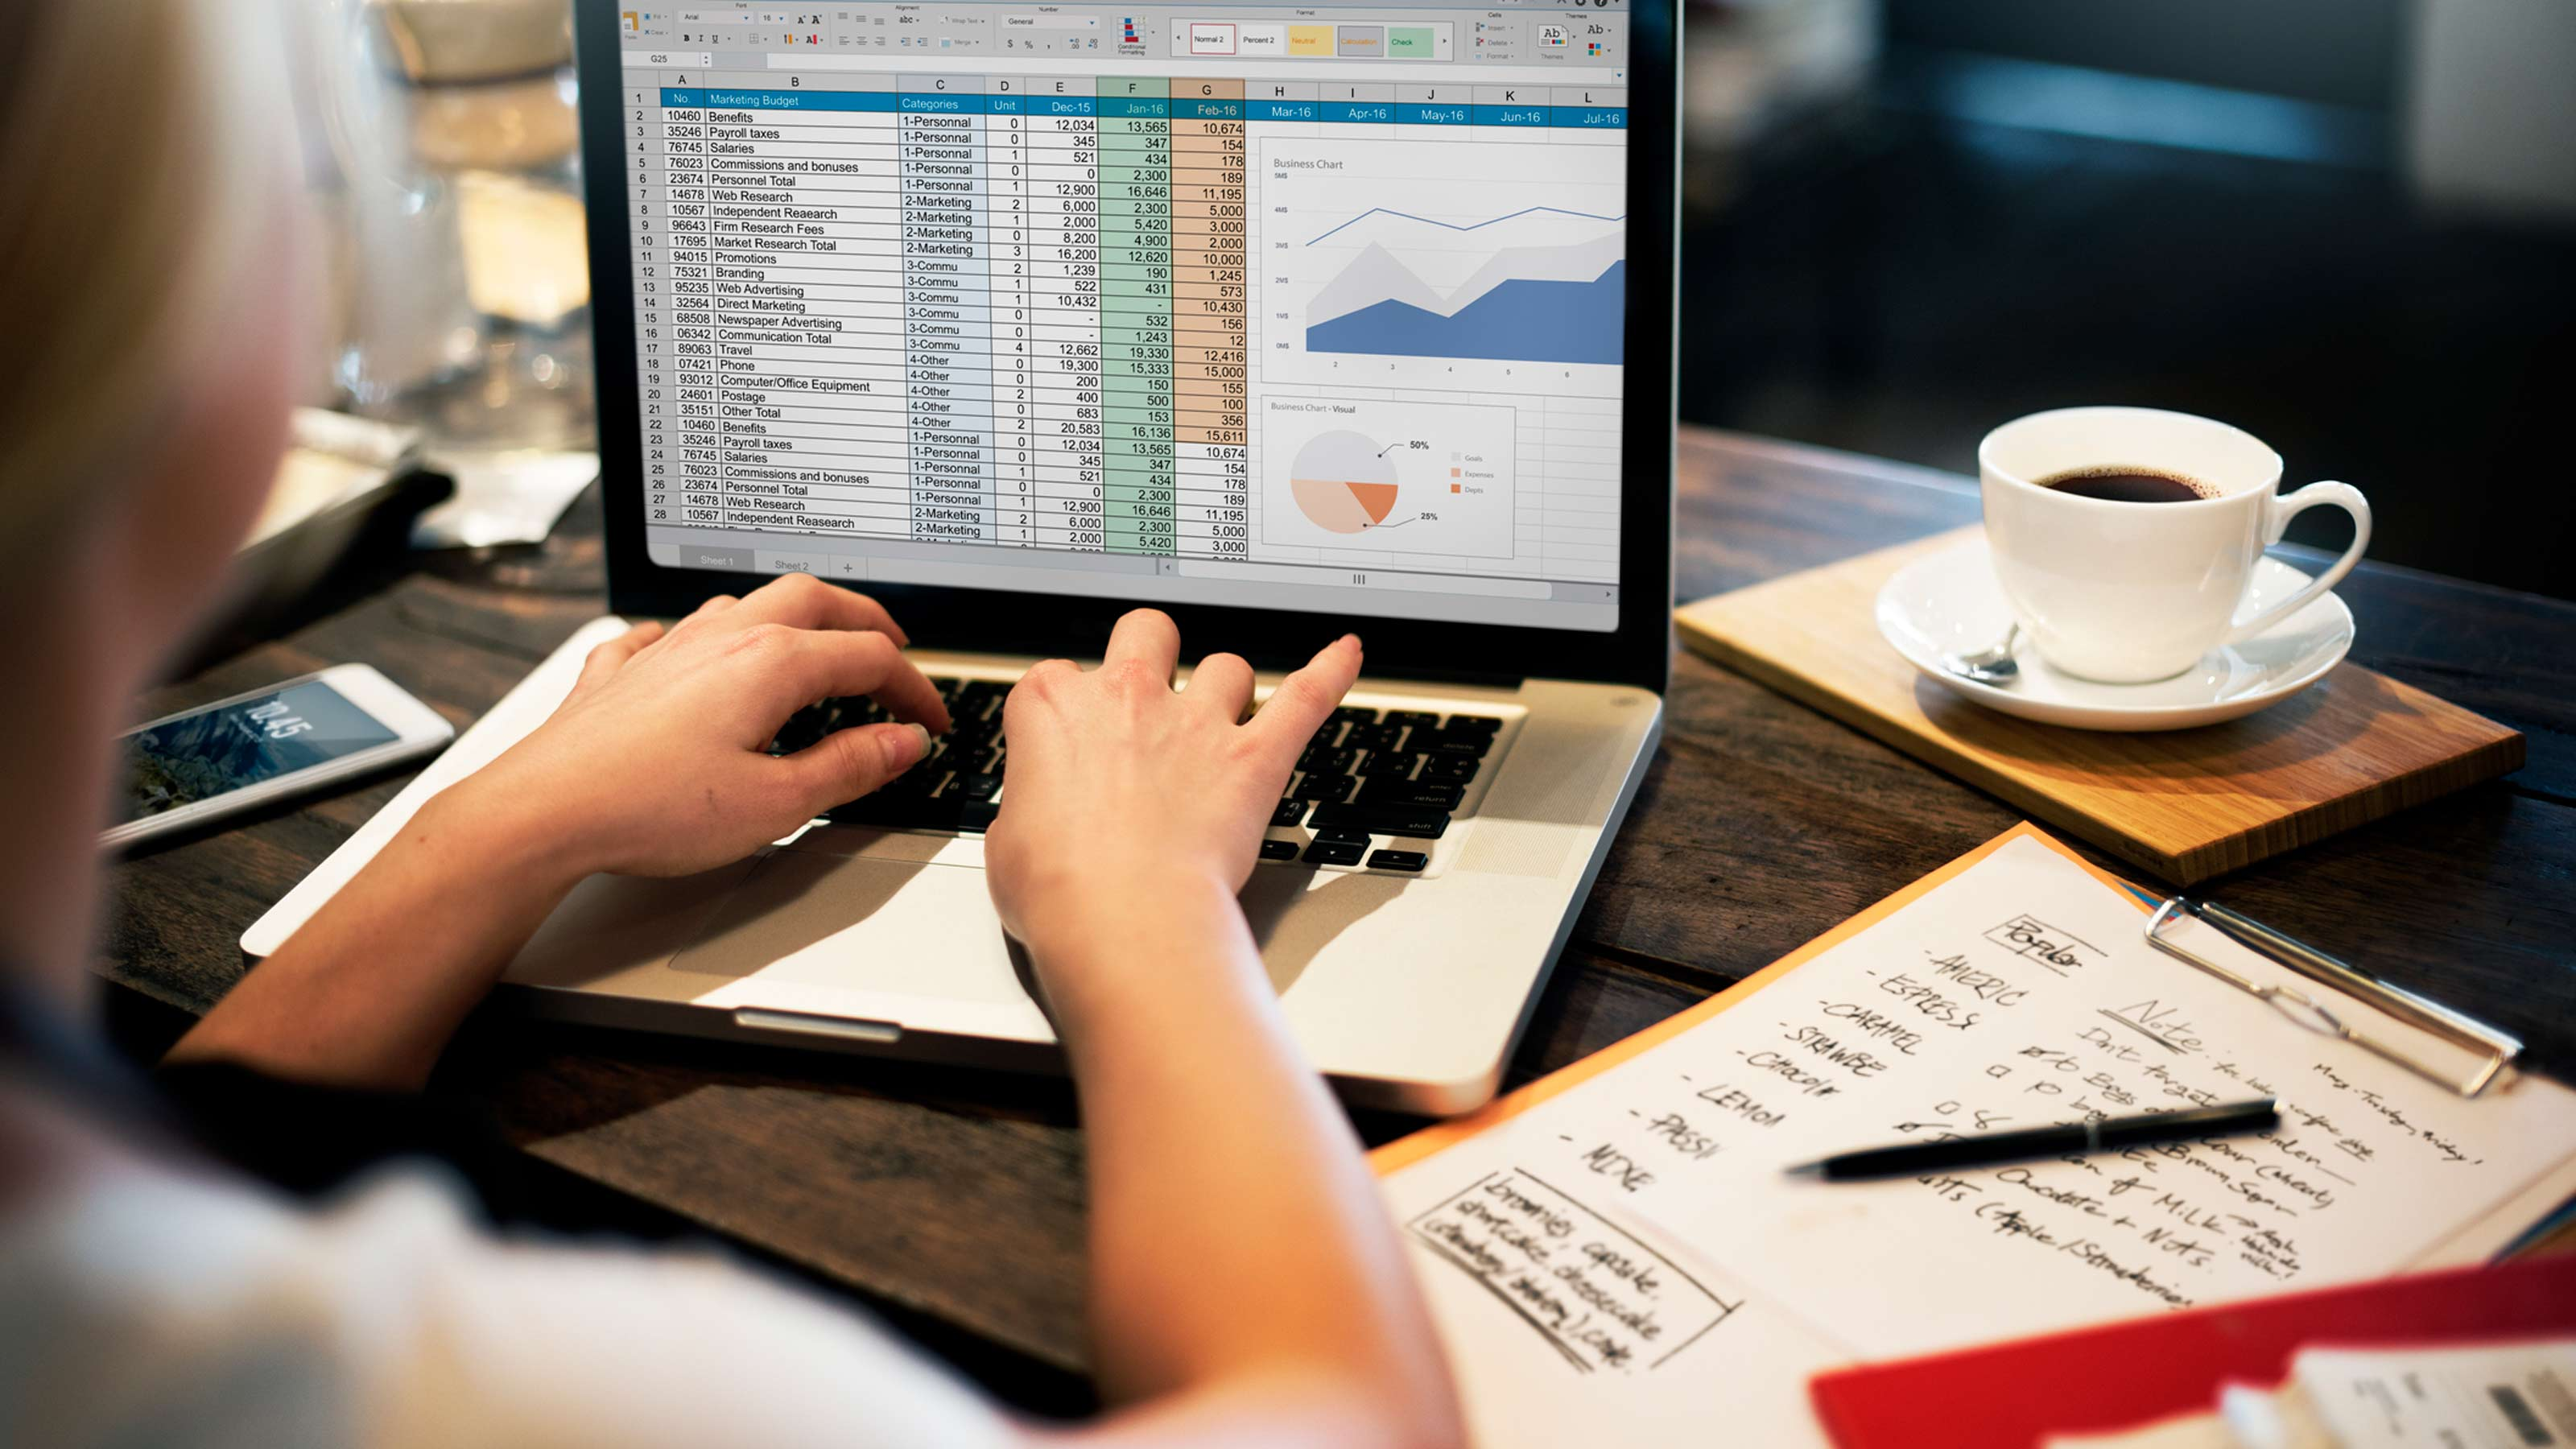 Be a Budgeting Expert: How to Track Spending with a Detailed Budget | Kiplinger